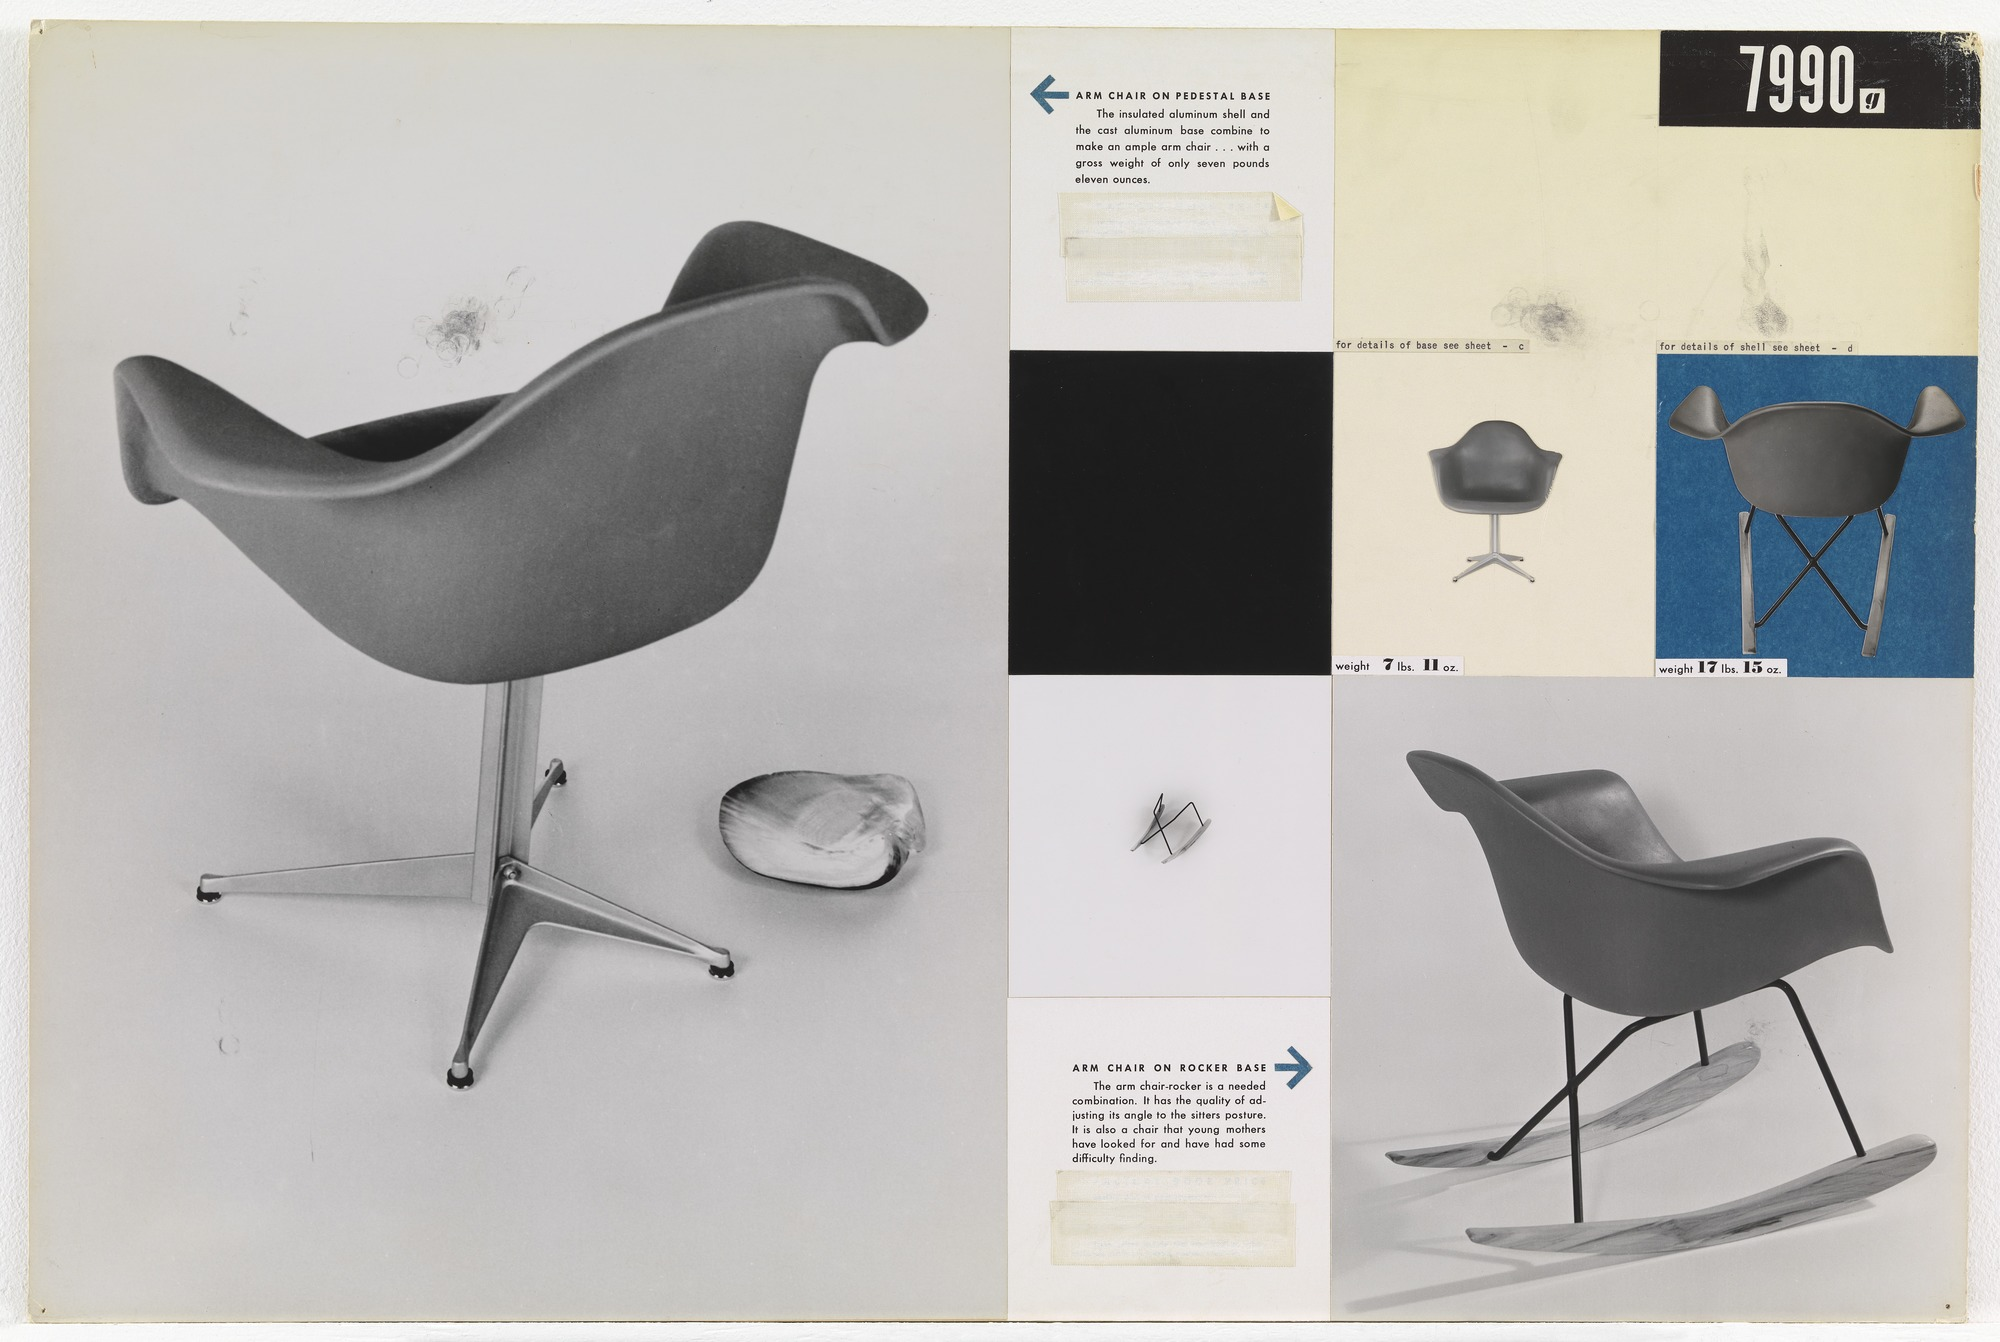 The First Prototype Was Built For An International Competition For Low Cost  Furniture Design Hosted By The Museum Of Modern Art In New York.